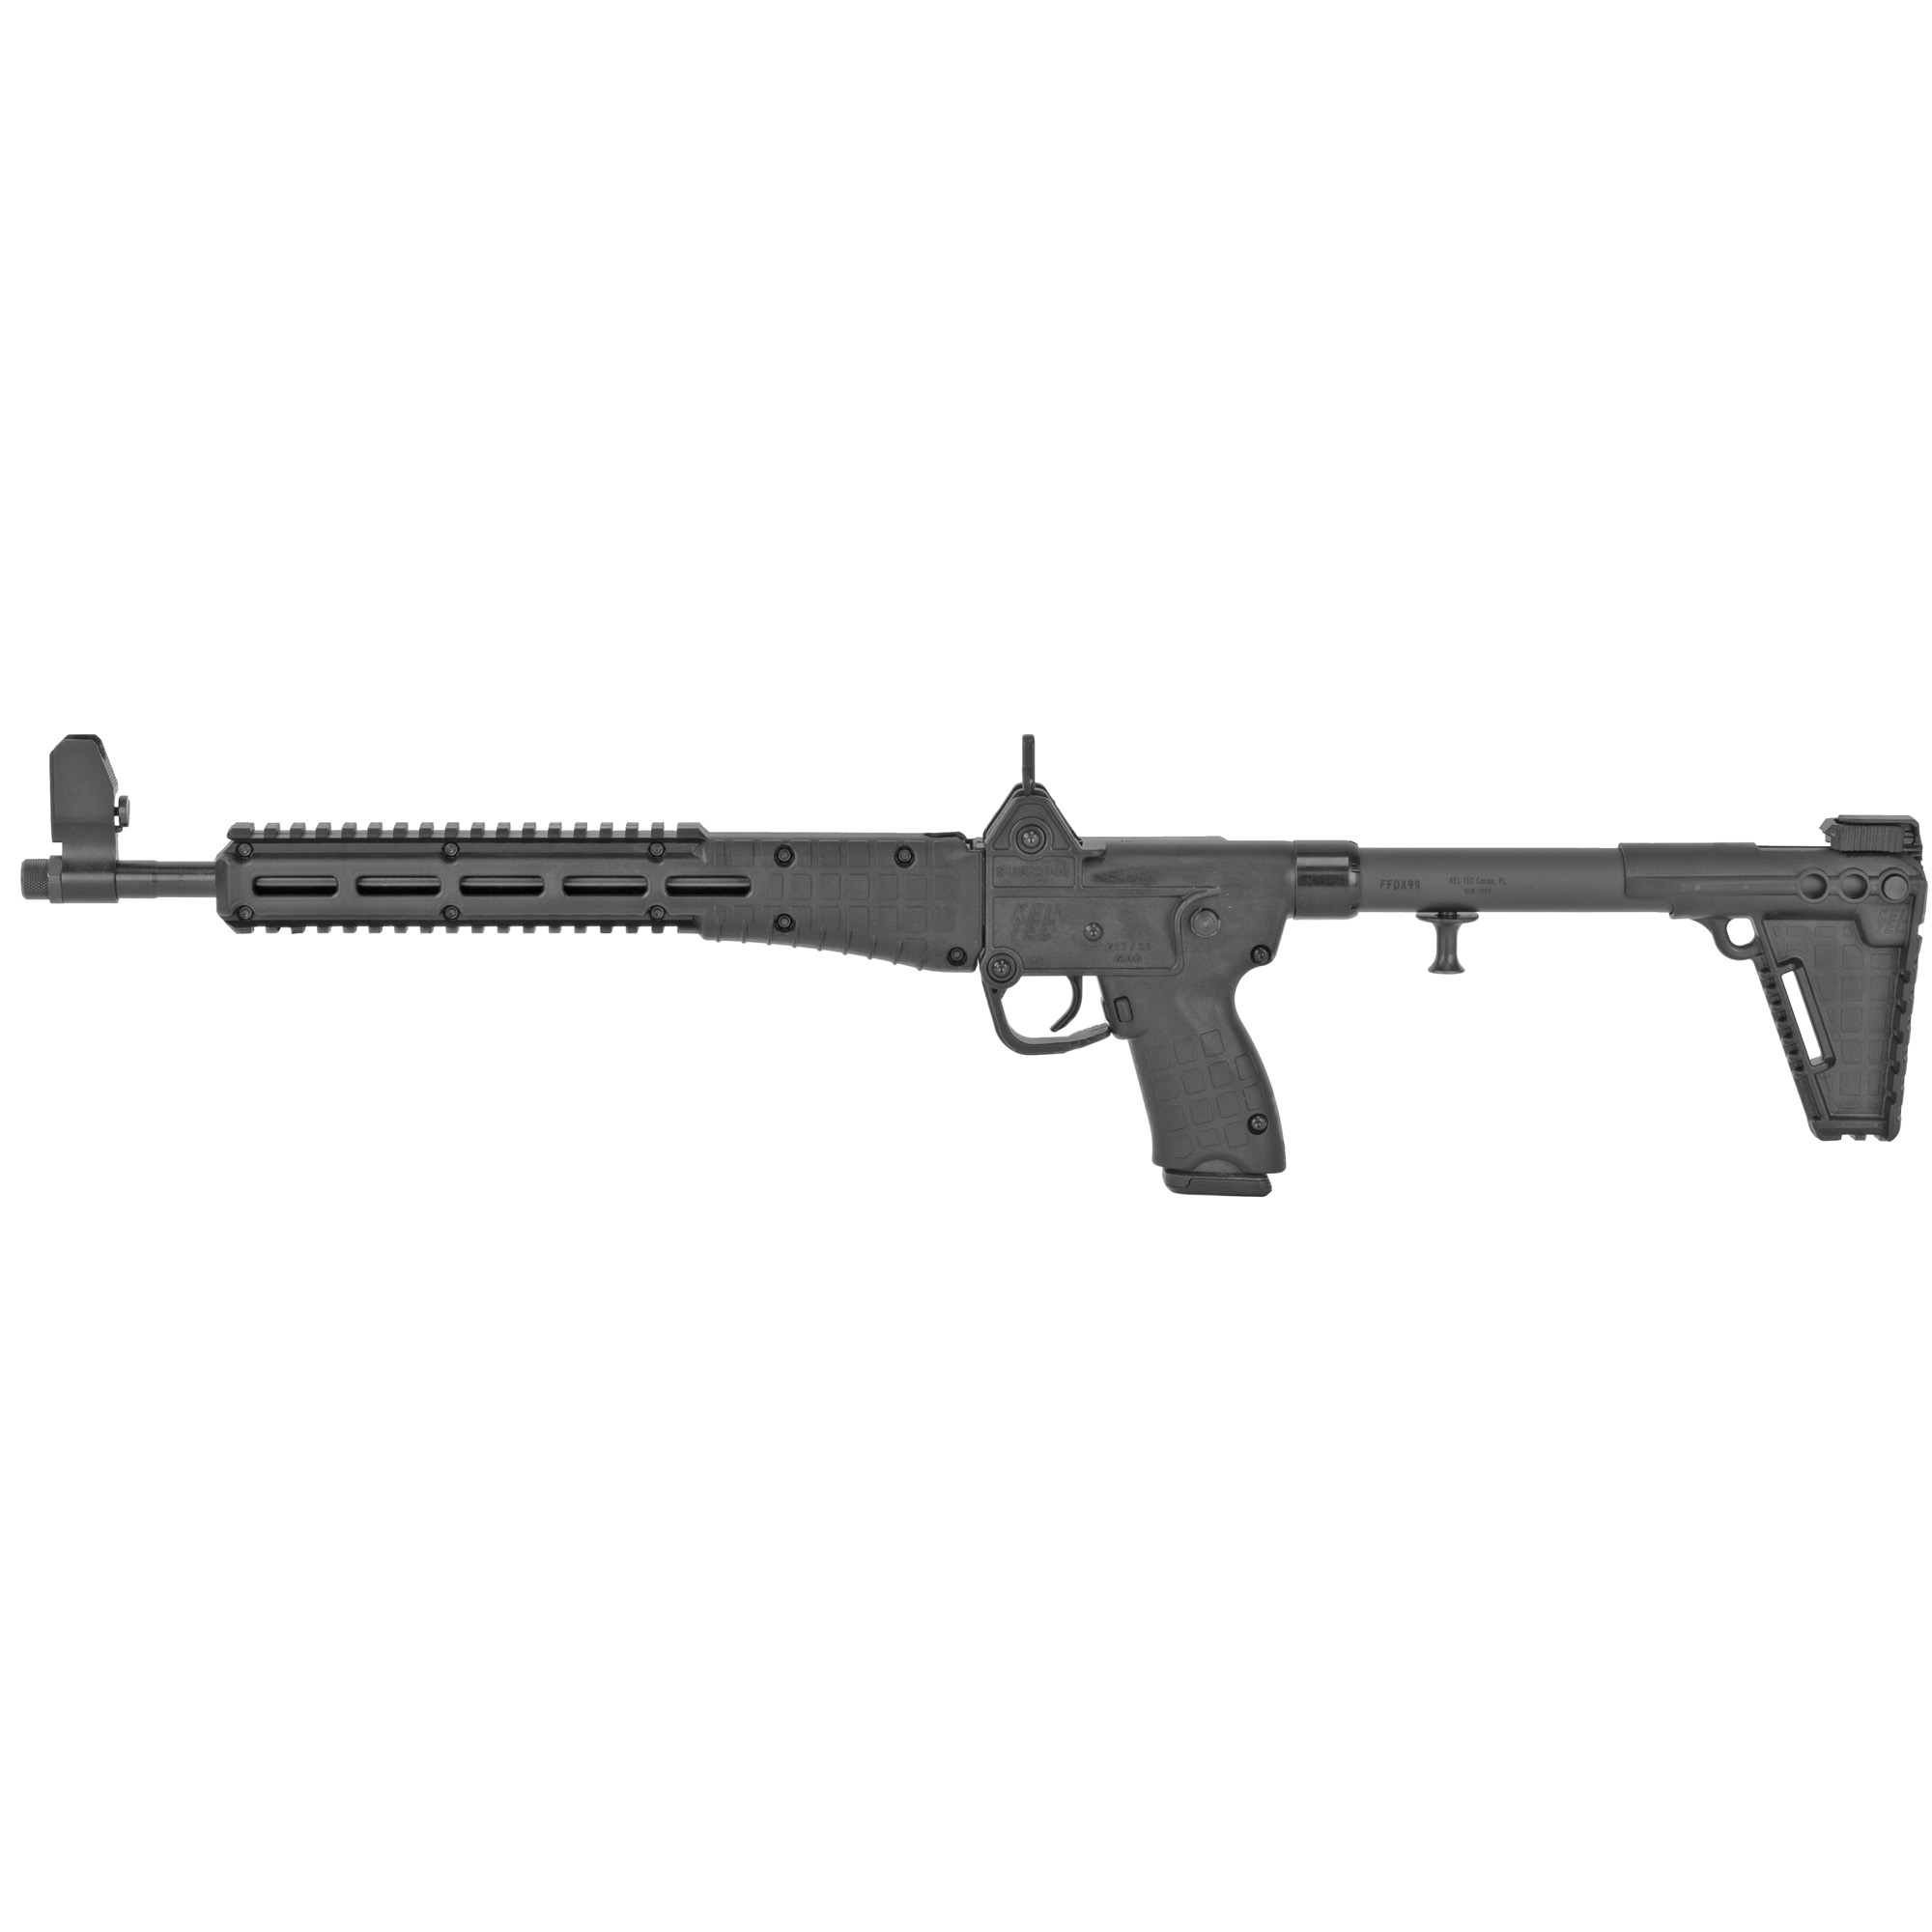 The semi-automatic Sub-2000(TM) is designed to be the most convenient 9mm or .40 caliber rifle available. It's adjustable and foldable to 16.25 x 7 inches for easy storage and accepts popular handgun magazines. It can easily be disassembled for cleaning or inspection without tools. The Sub-2000 is Ideal for backpacking trips and situations where space and convenience are paramount.